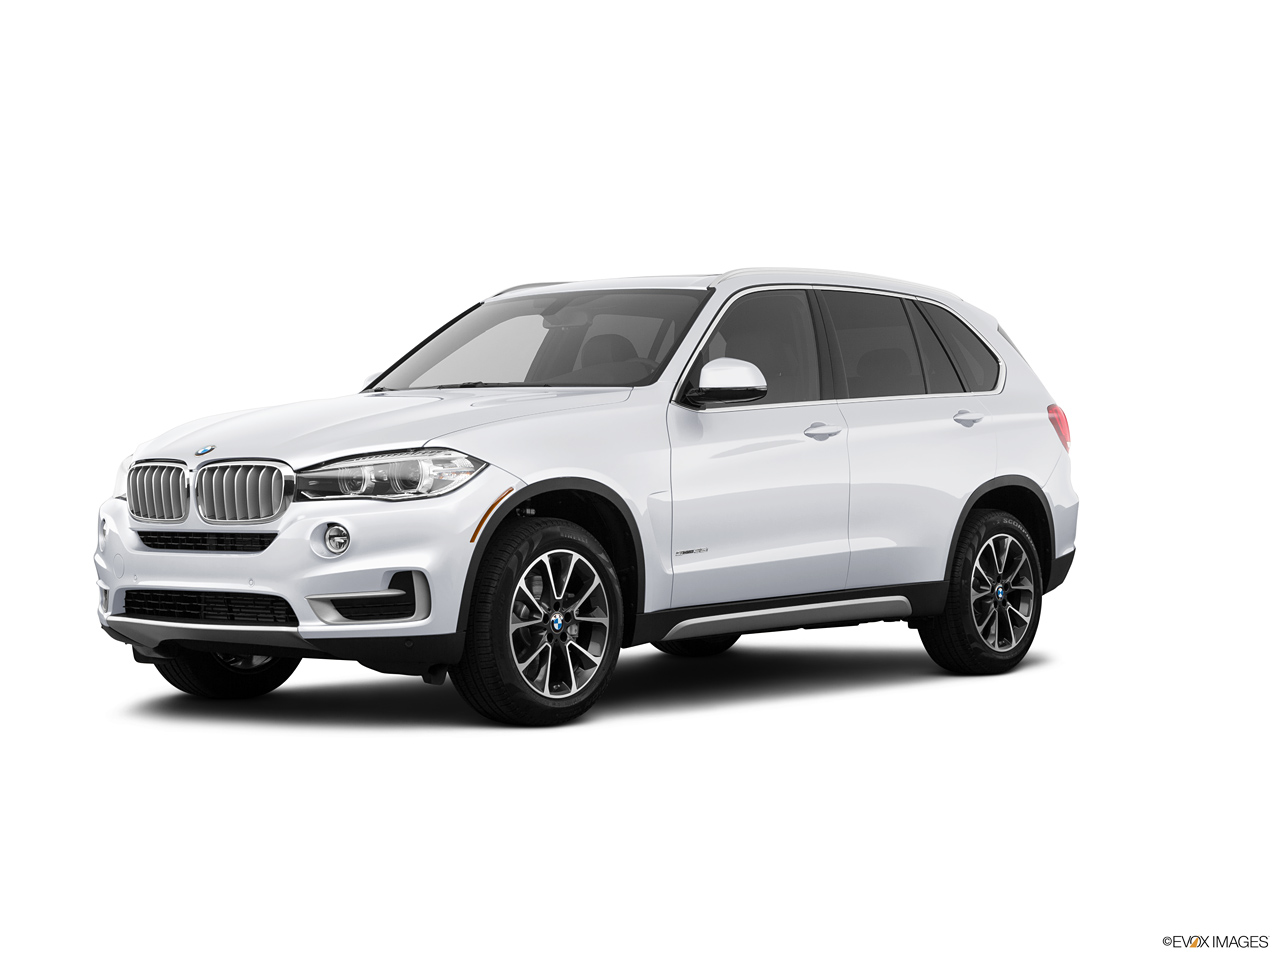 Bmw X5 Lease >> Bmw Lease Takeover In Vancouver Bc 2018 Bmw X5 Xdrive 35i Automatic Awd Id 3838